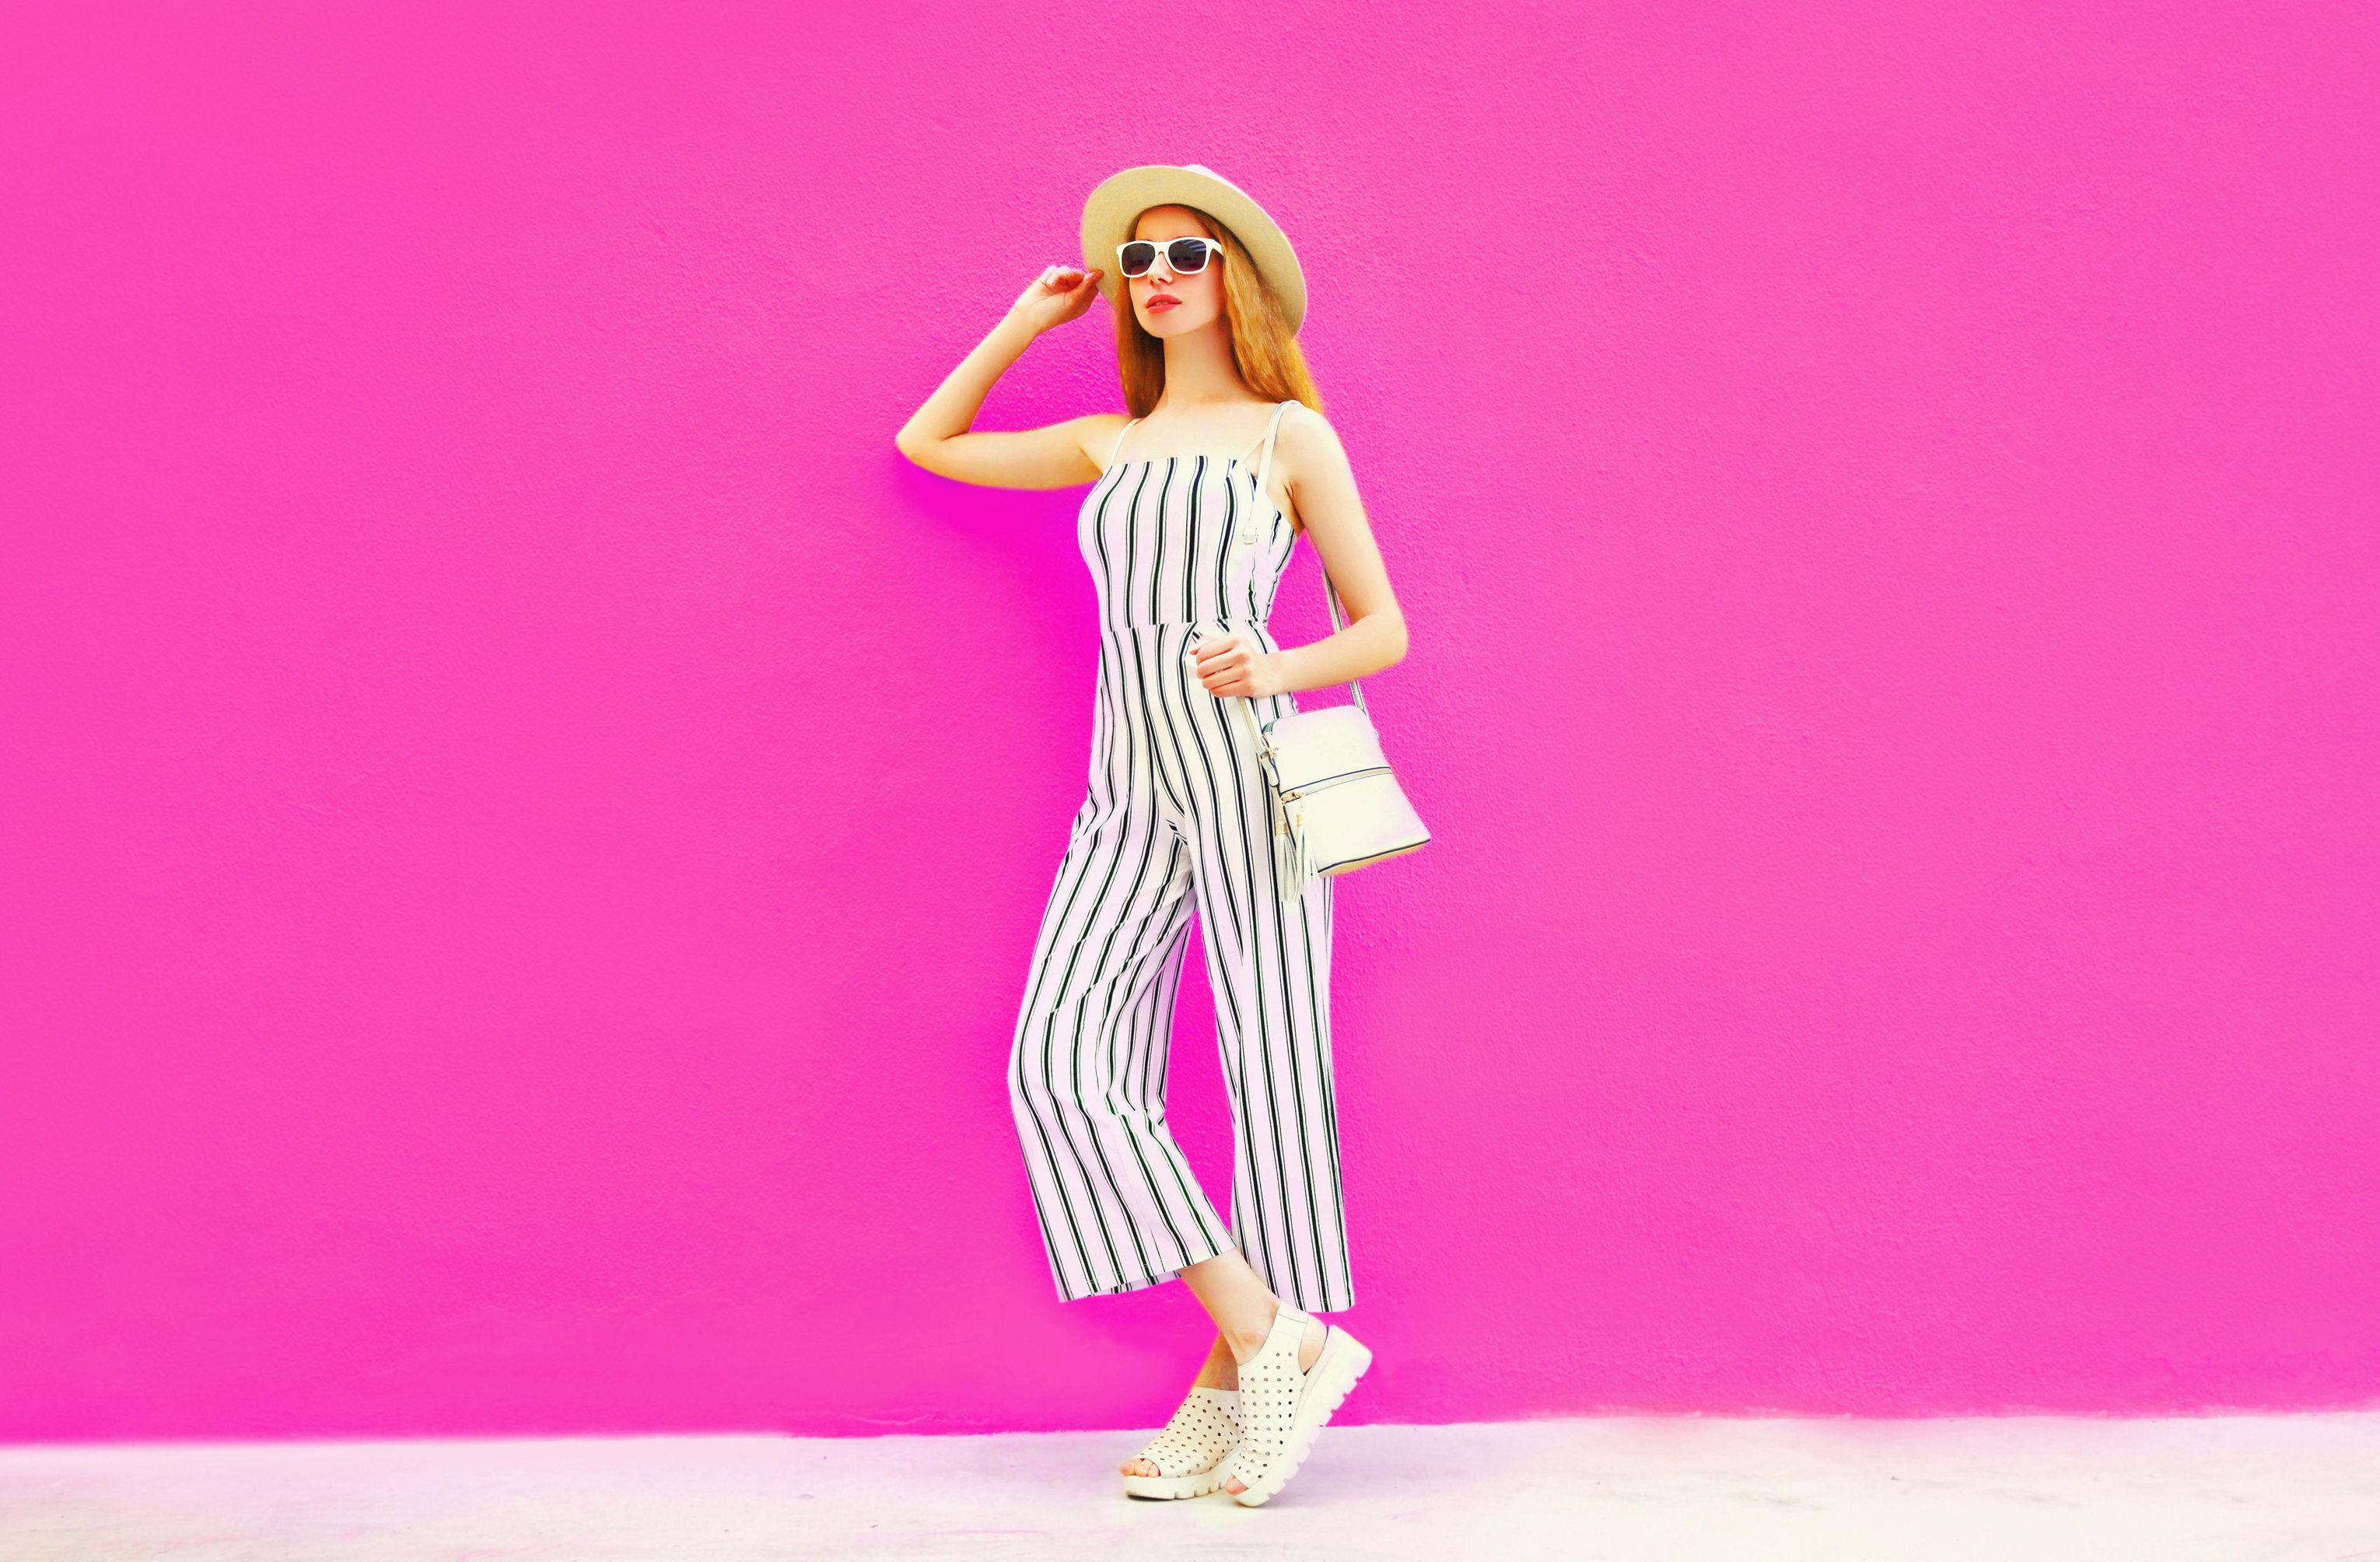 stylish woman model in summer round straw hat, white striped jumpsuit posing on colorful pink wall background